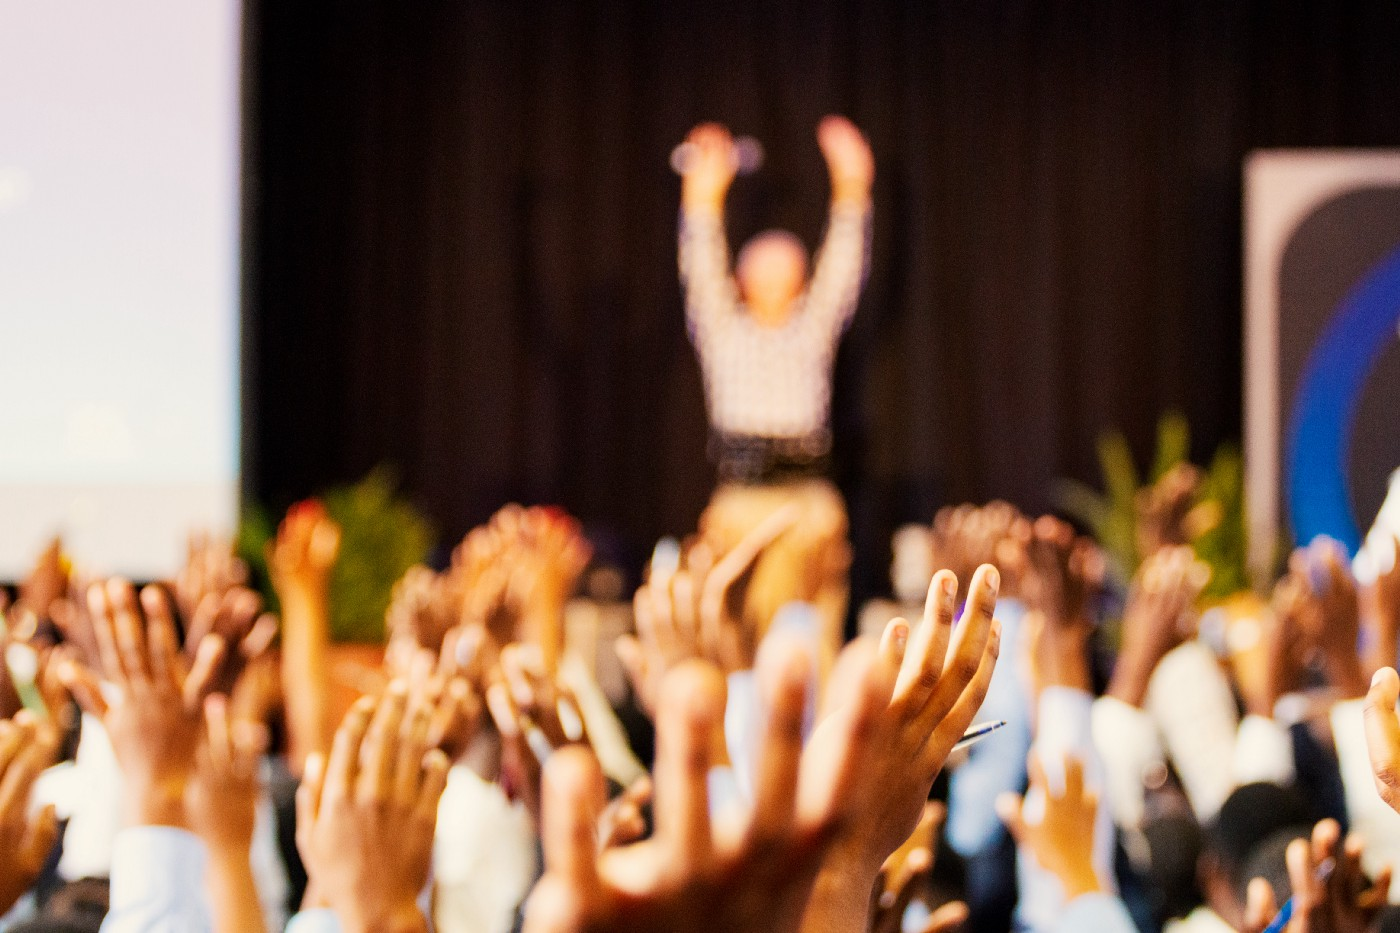 Scores hands raised in the air and a speaker with a microphone in the distance, on stage, hands raised and addressing the room